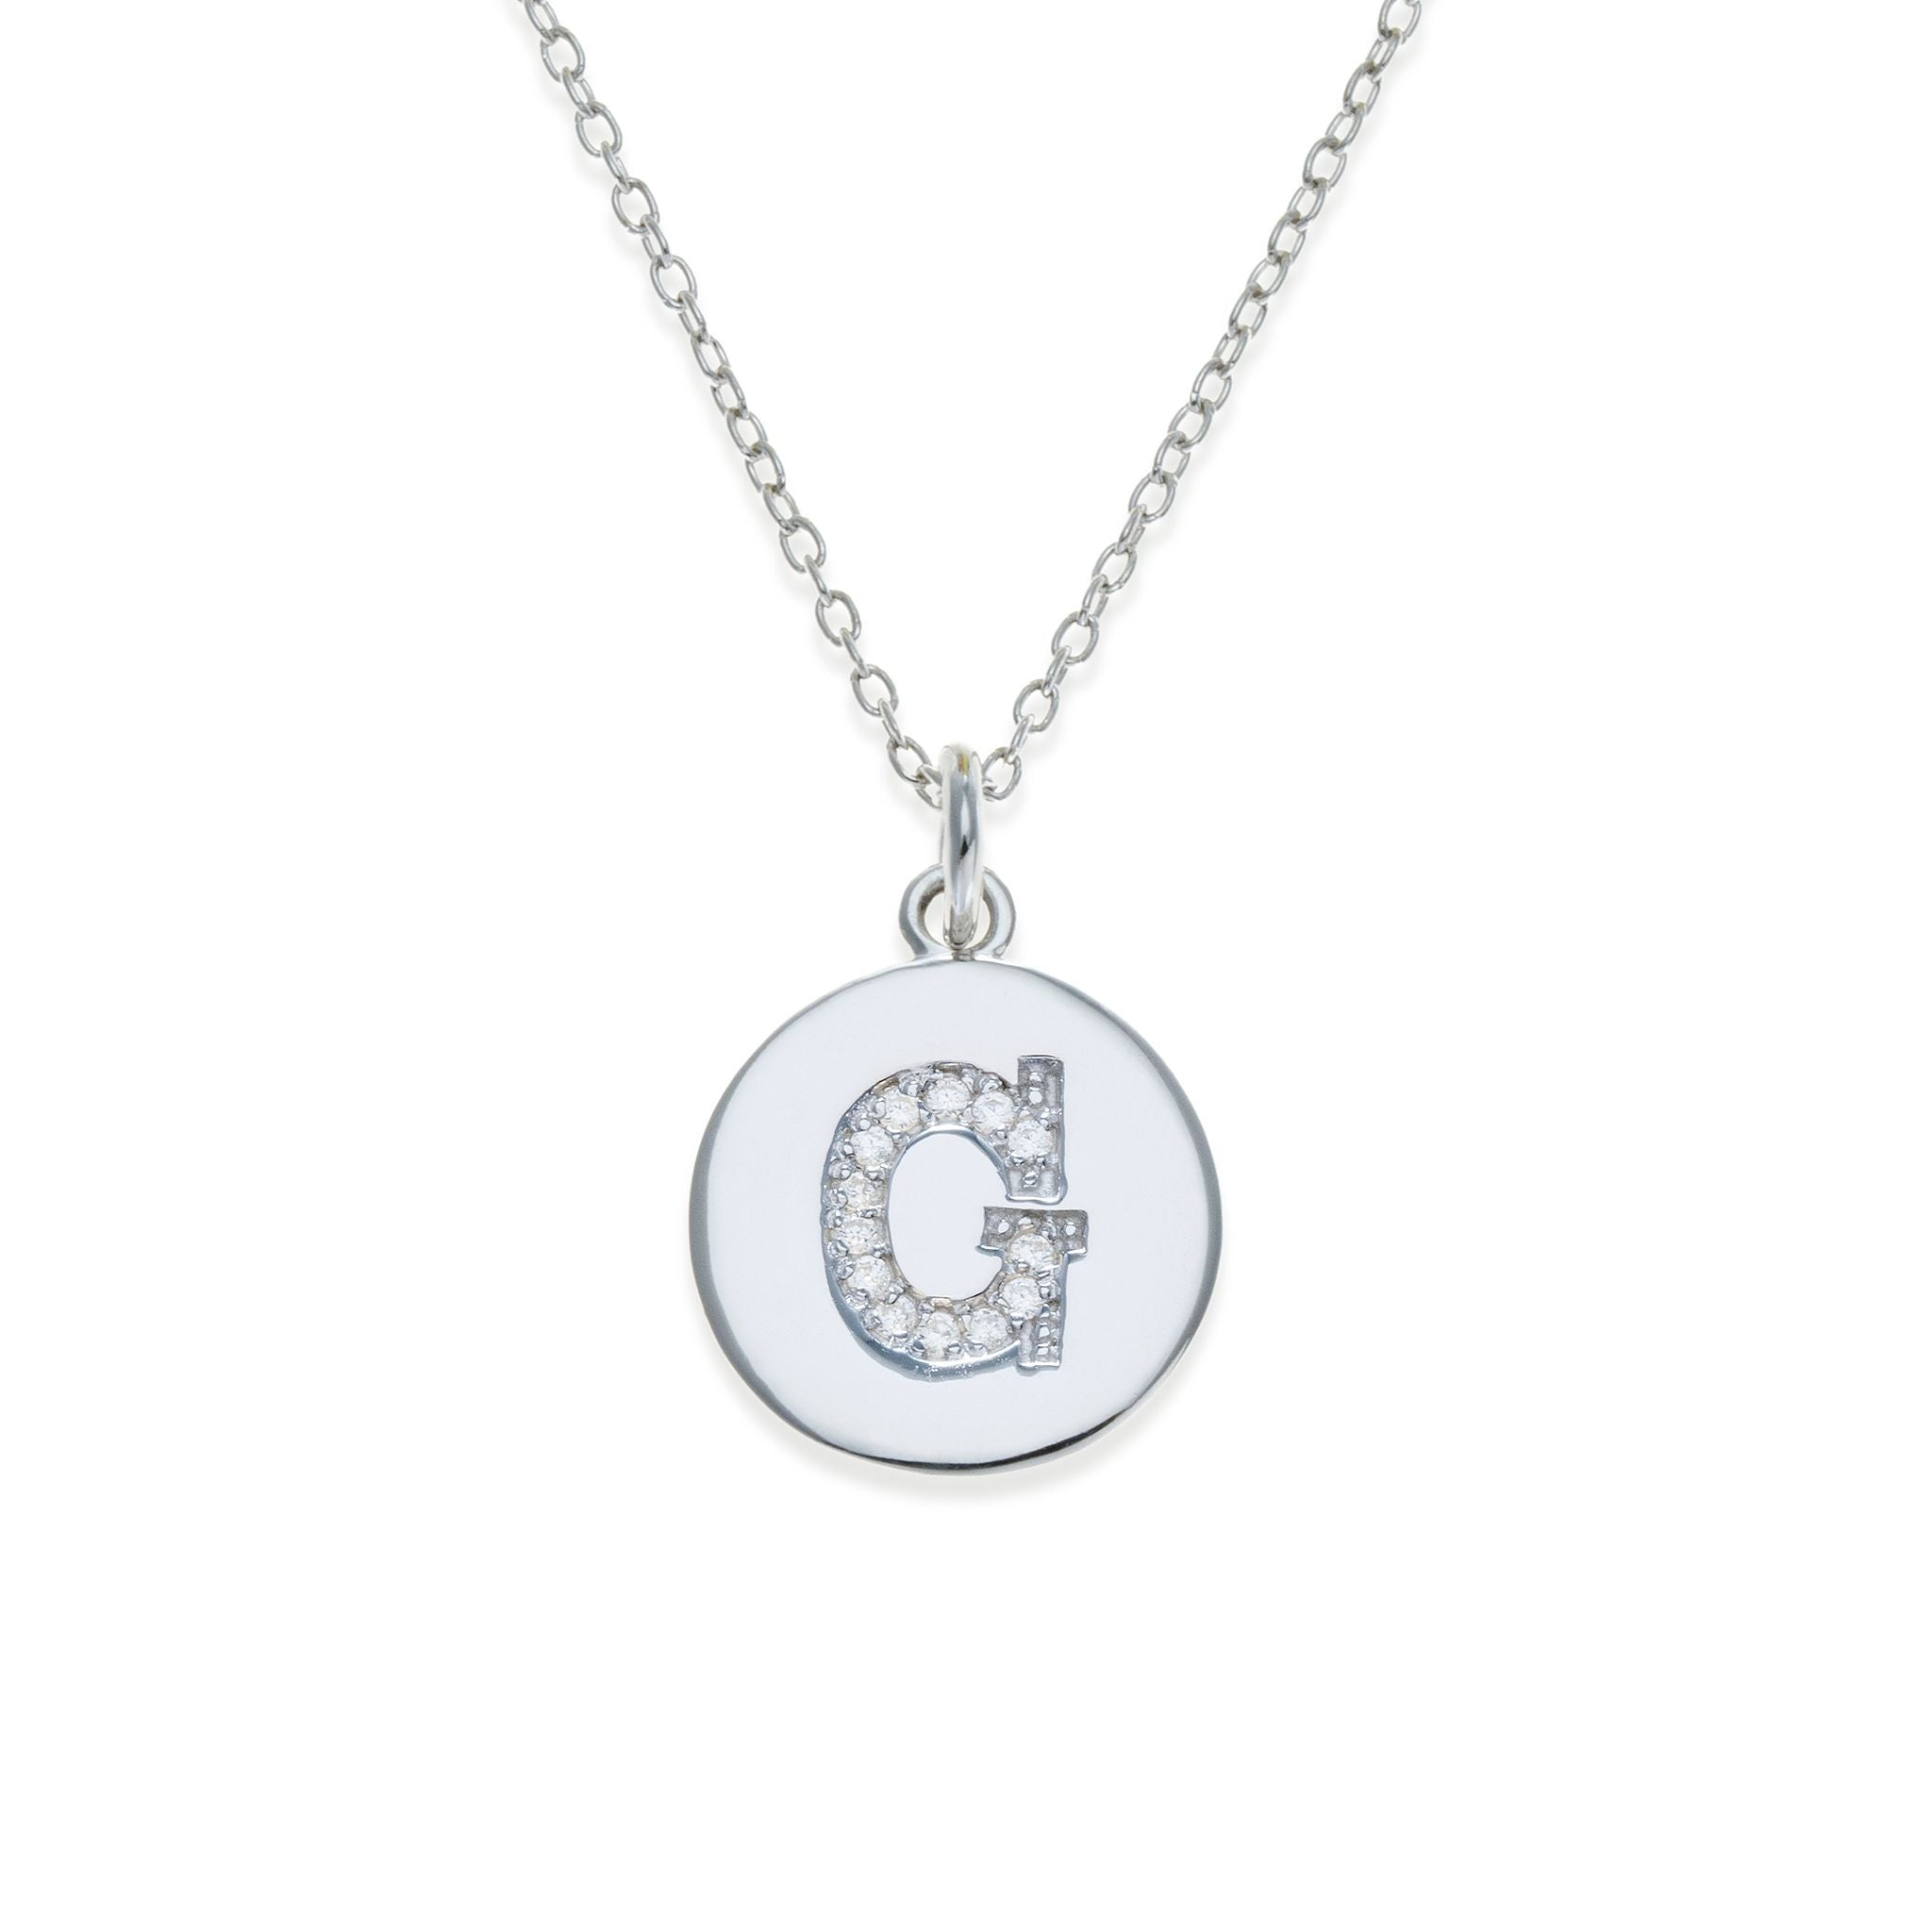 Sterling silver initial necklace g kith kin its personal sterling silver initial necklace g kith kin its personal collection aloadofball Choice Image